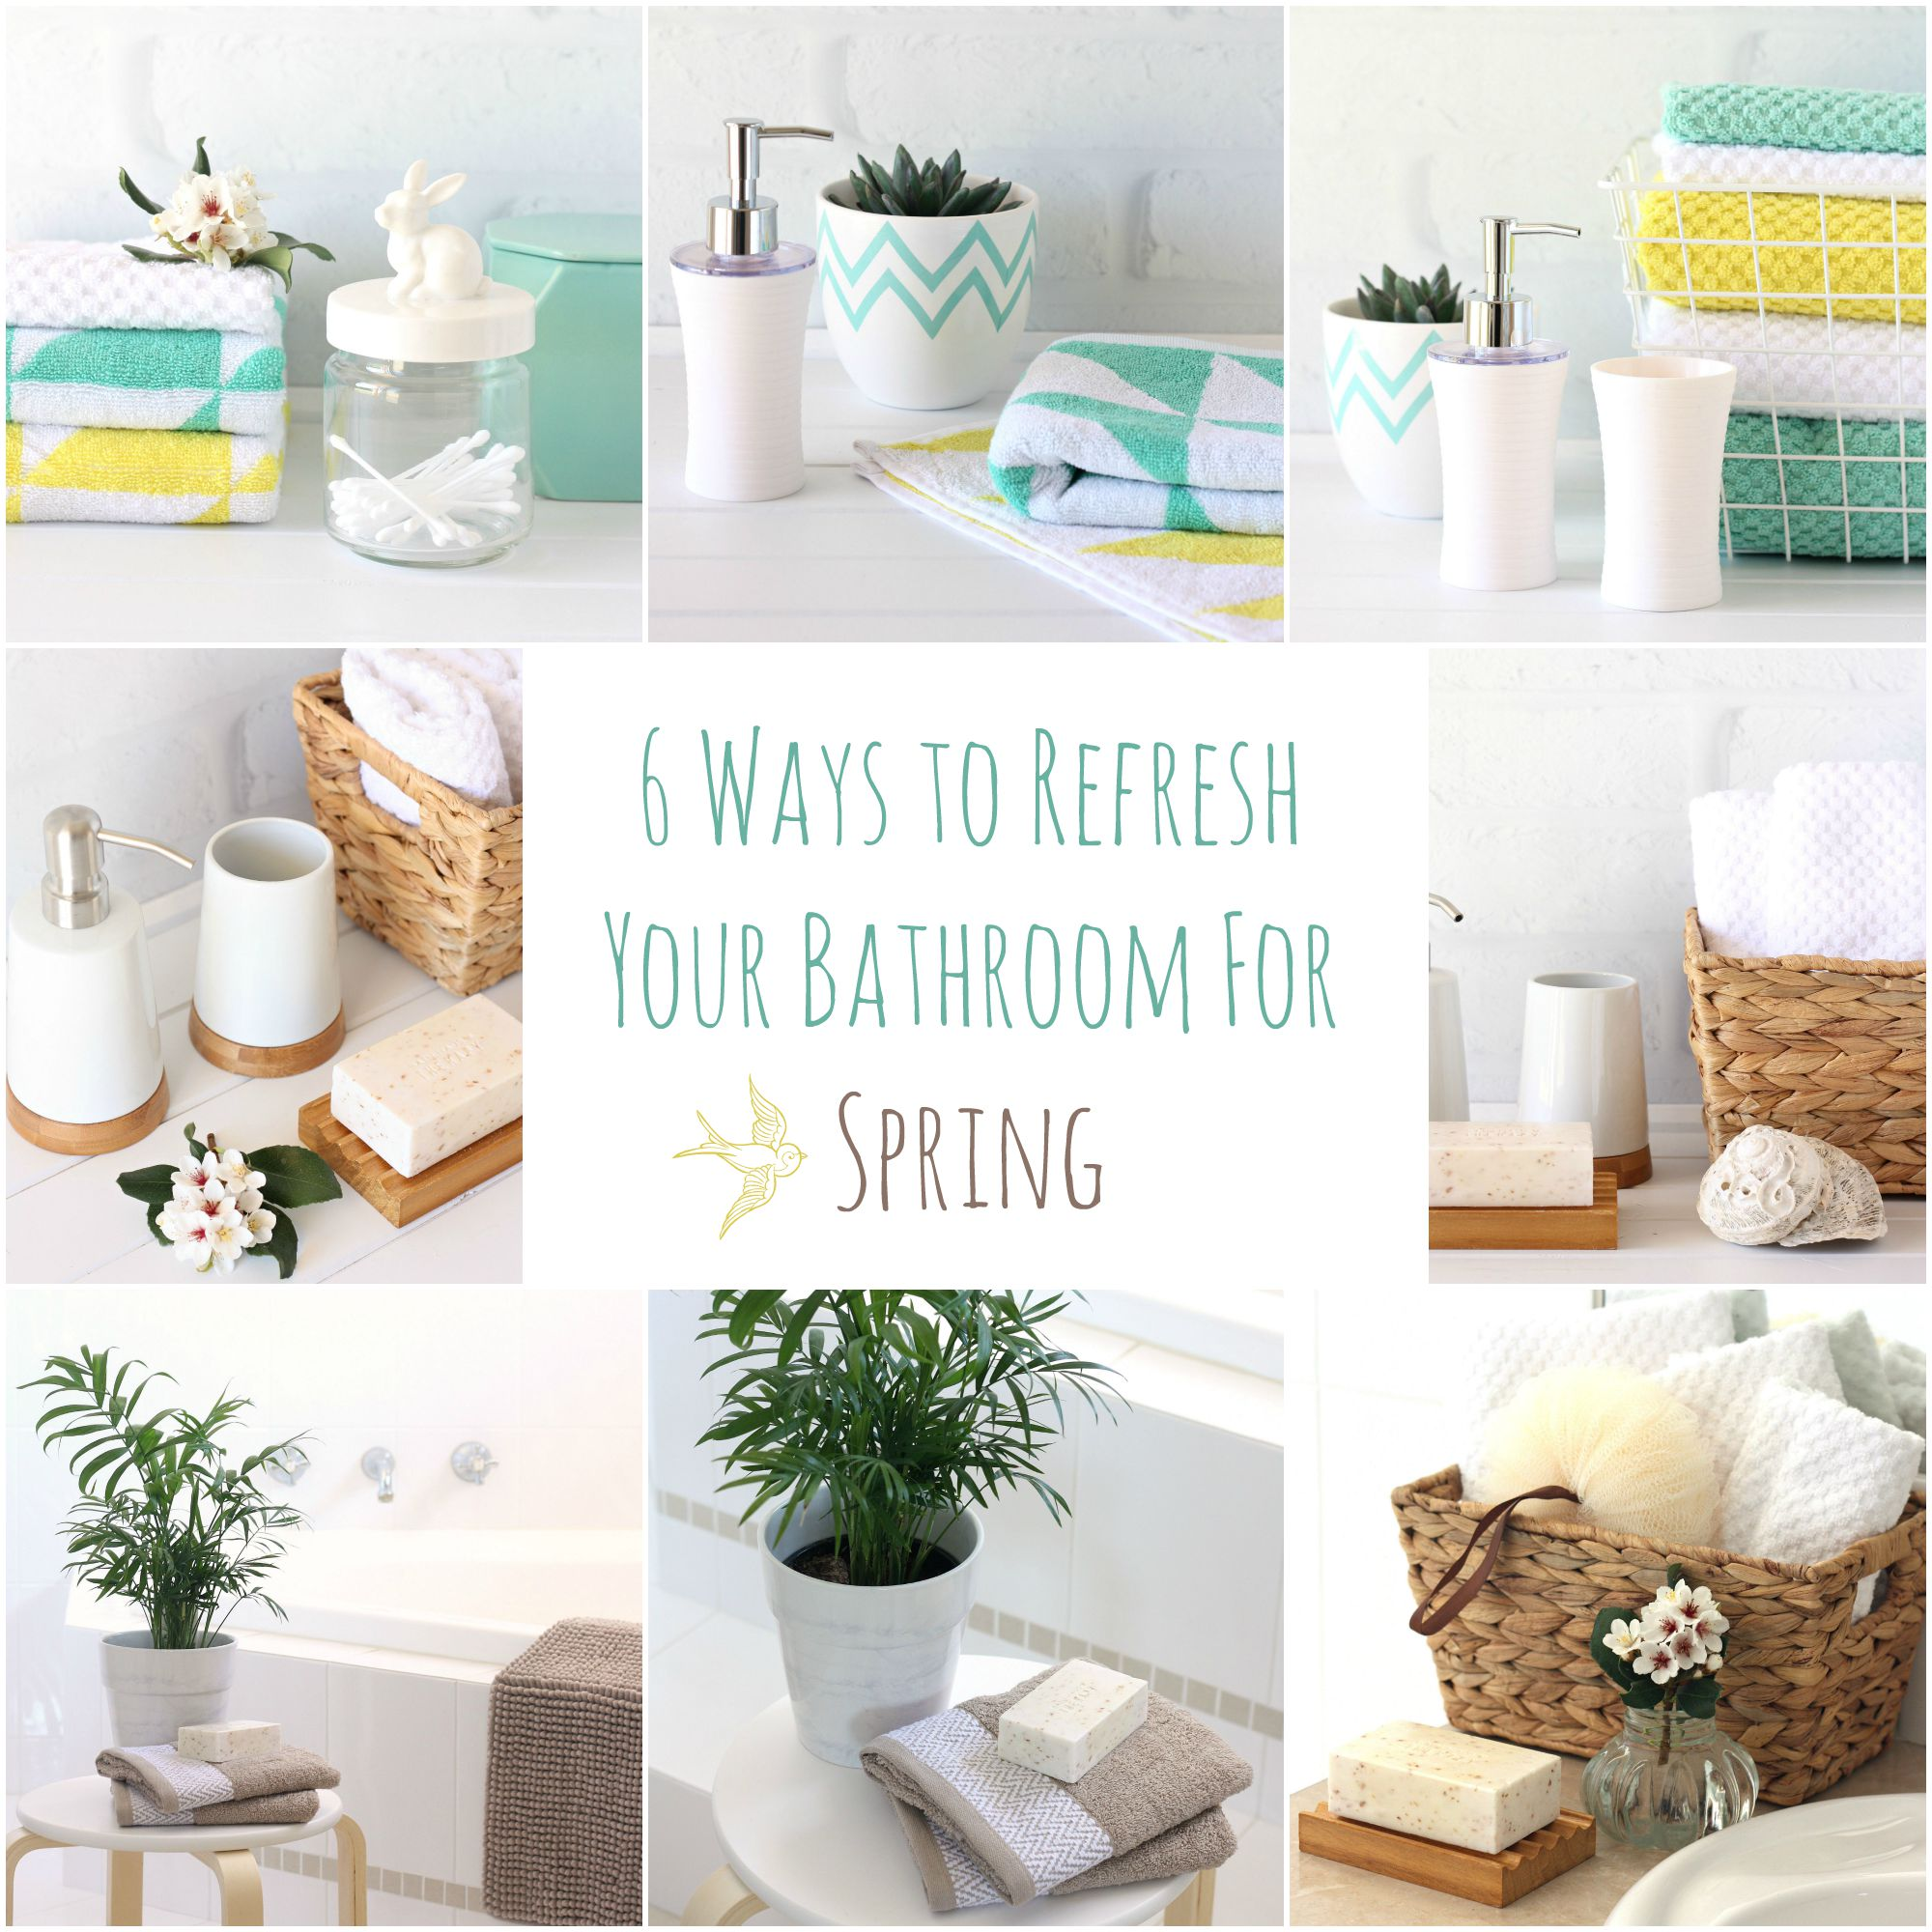 6 Ways To Refresh Your Bathroom For Spring